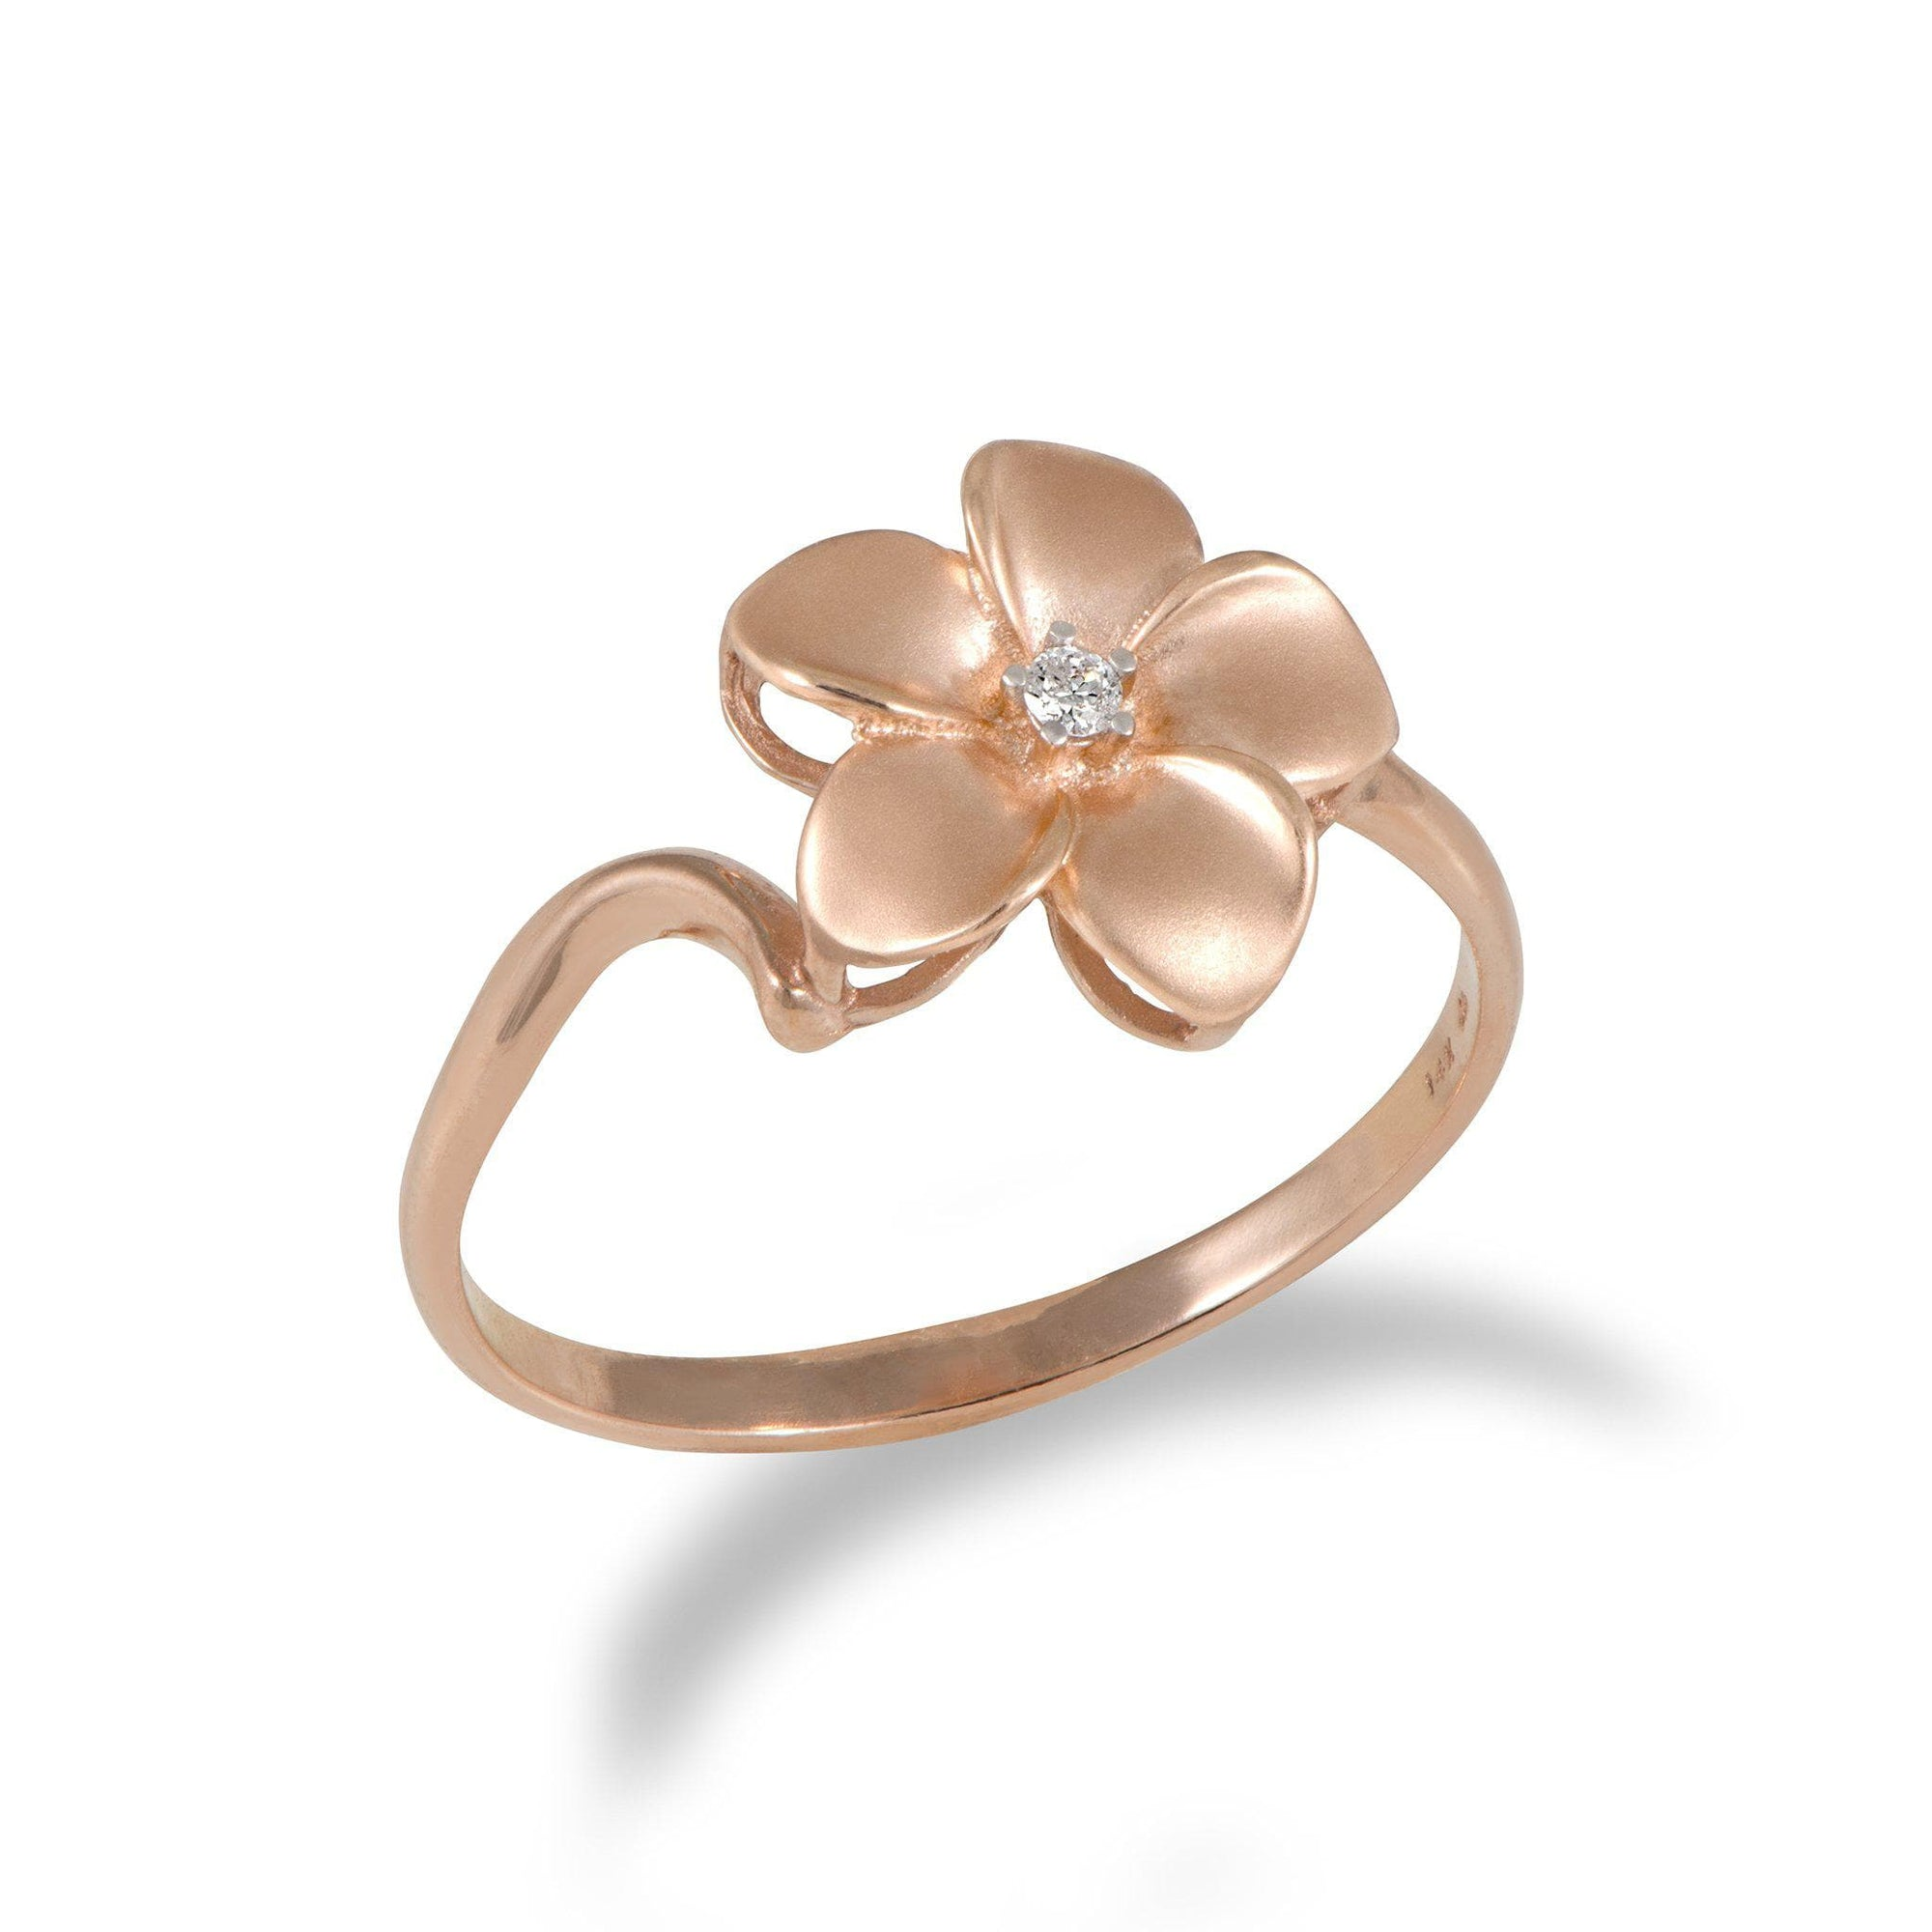 Plumeria Ring with Diamond in 14K Rose Gold - 11mm - Maui Divers Jewelry